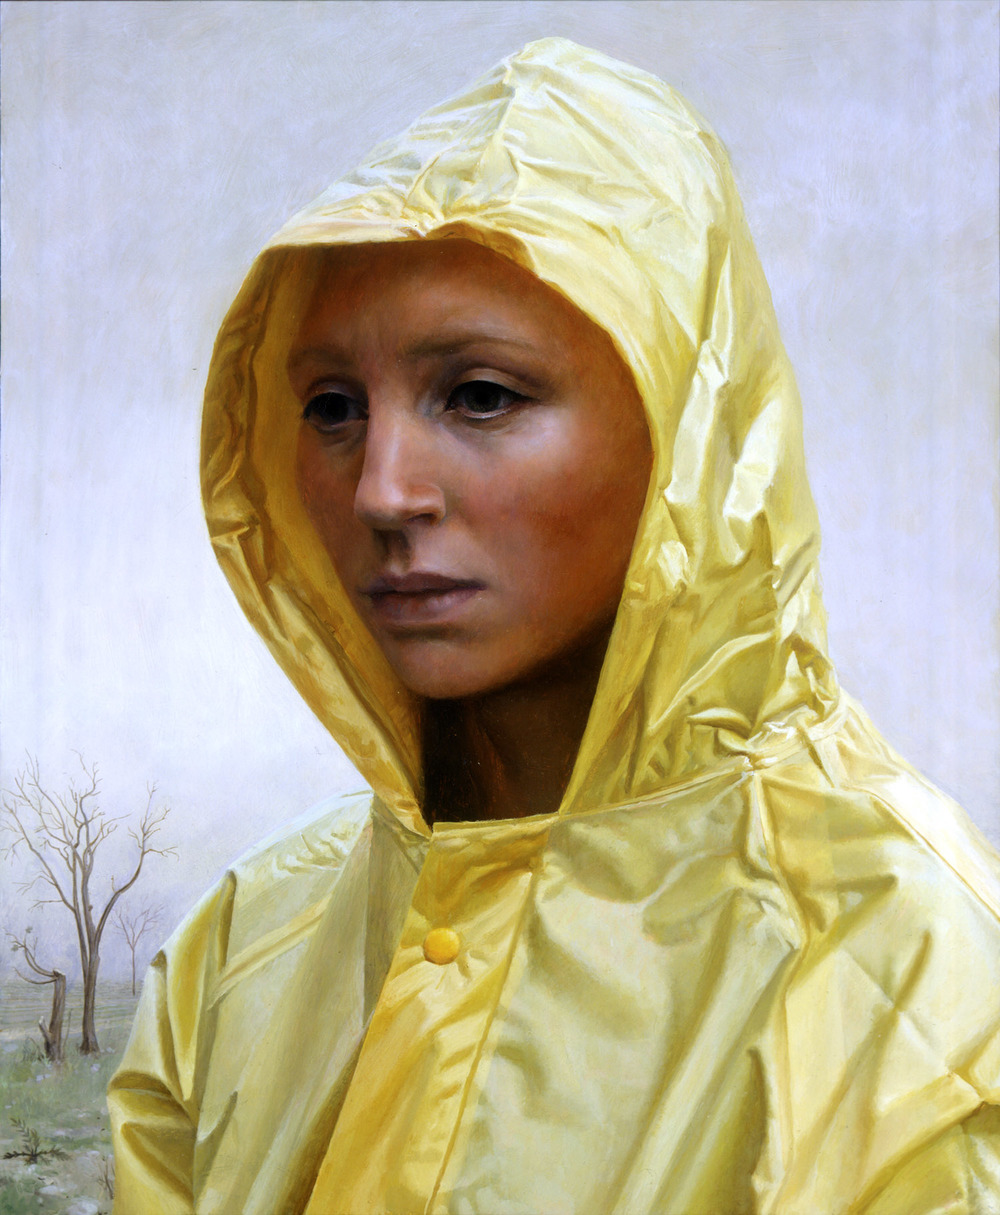 Raincoat , oil on panel, 23 x 19 in, 2002